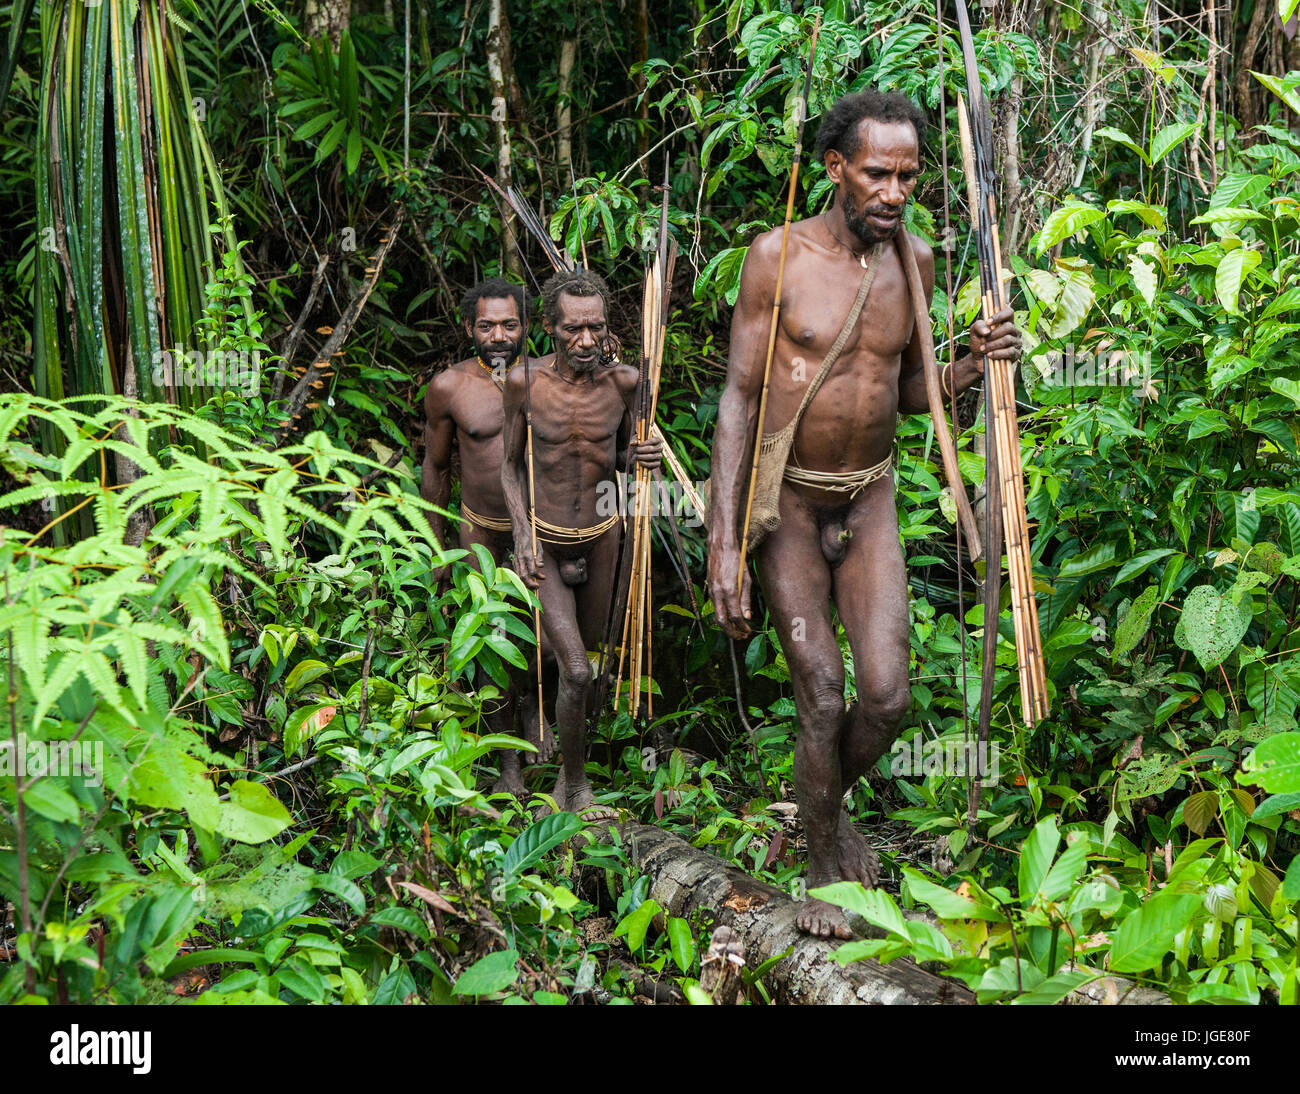 INDONESIA, ONNI VILLAGE, NEW GUINEA - JUNE 24: Men Korowai tribe